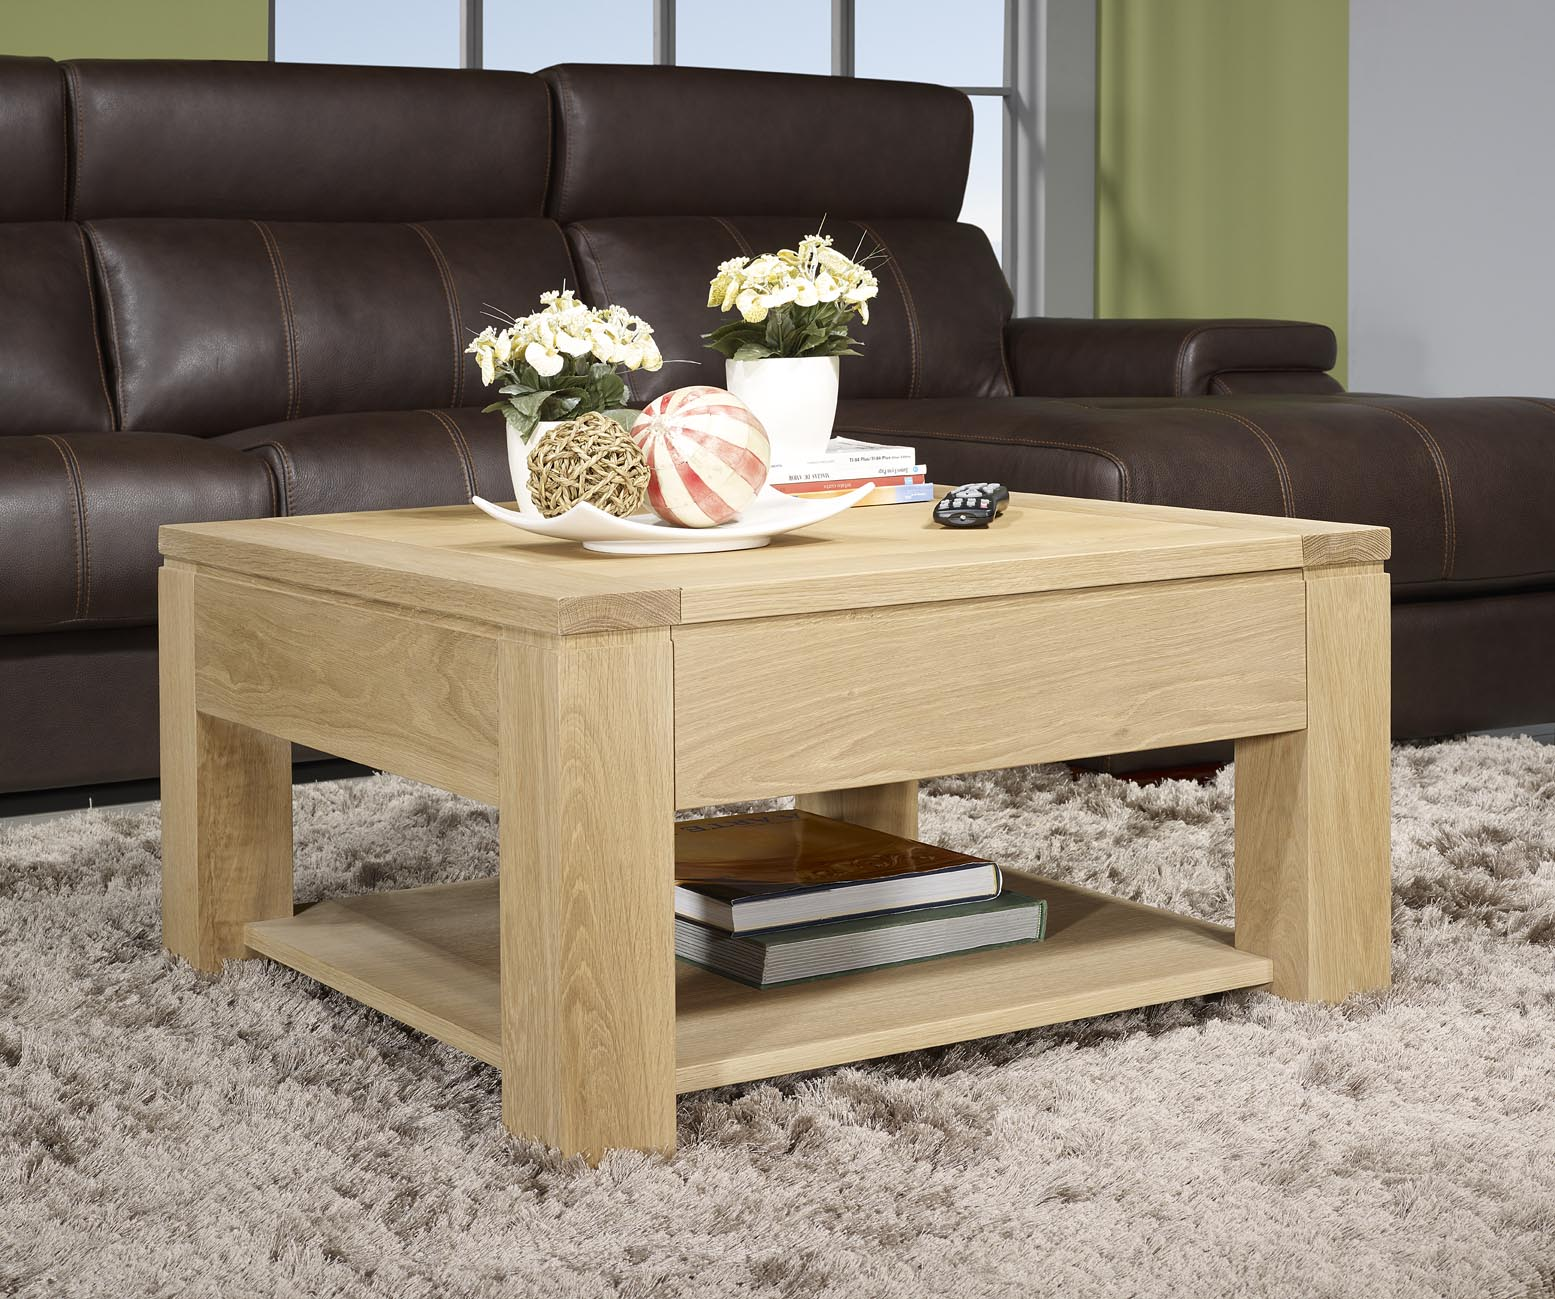 Table basse jean en ch ne massif ligne contemporaine - Table basse contemporaine bois ...